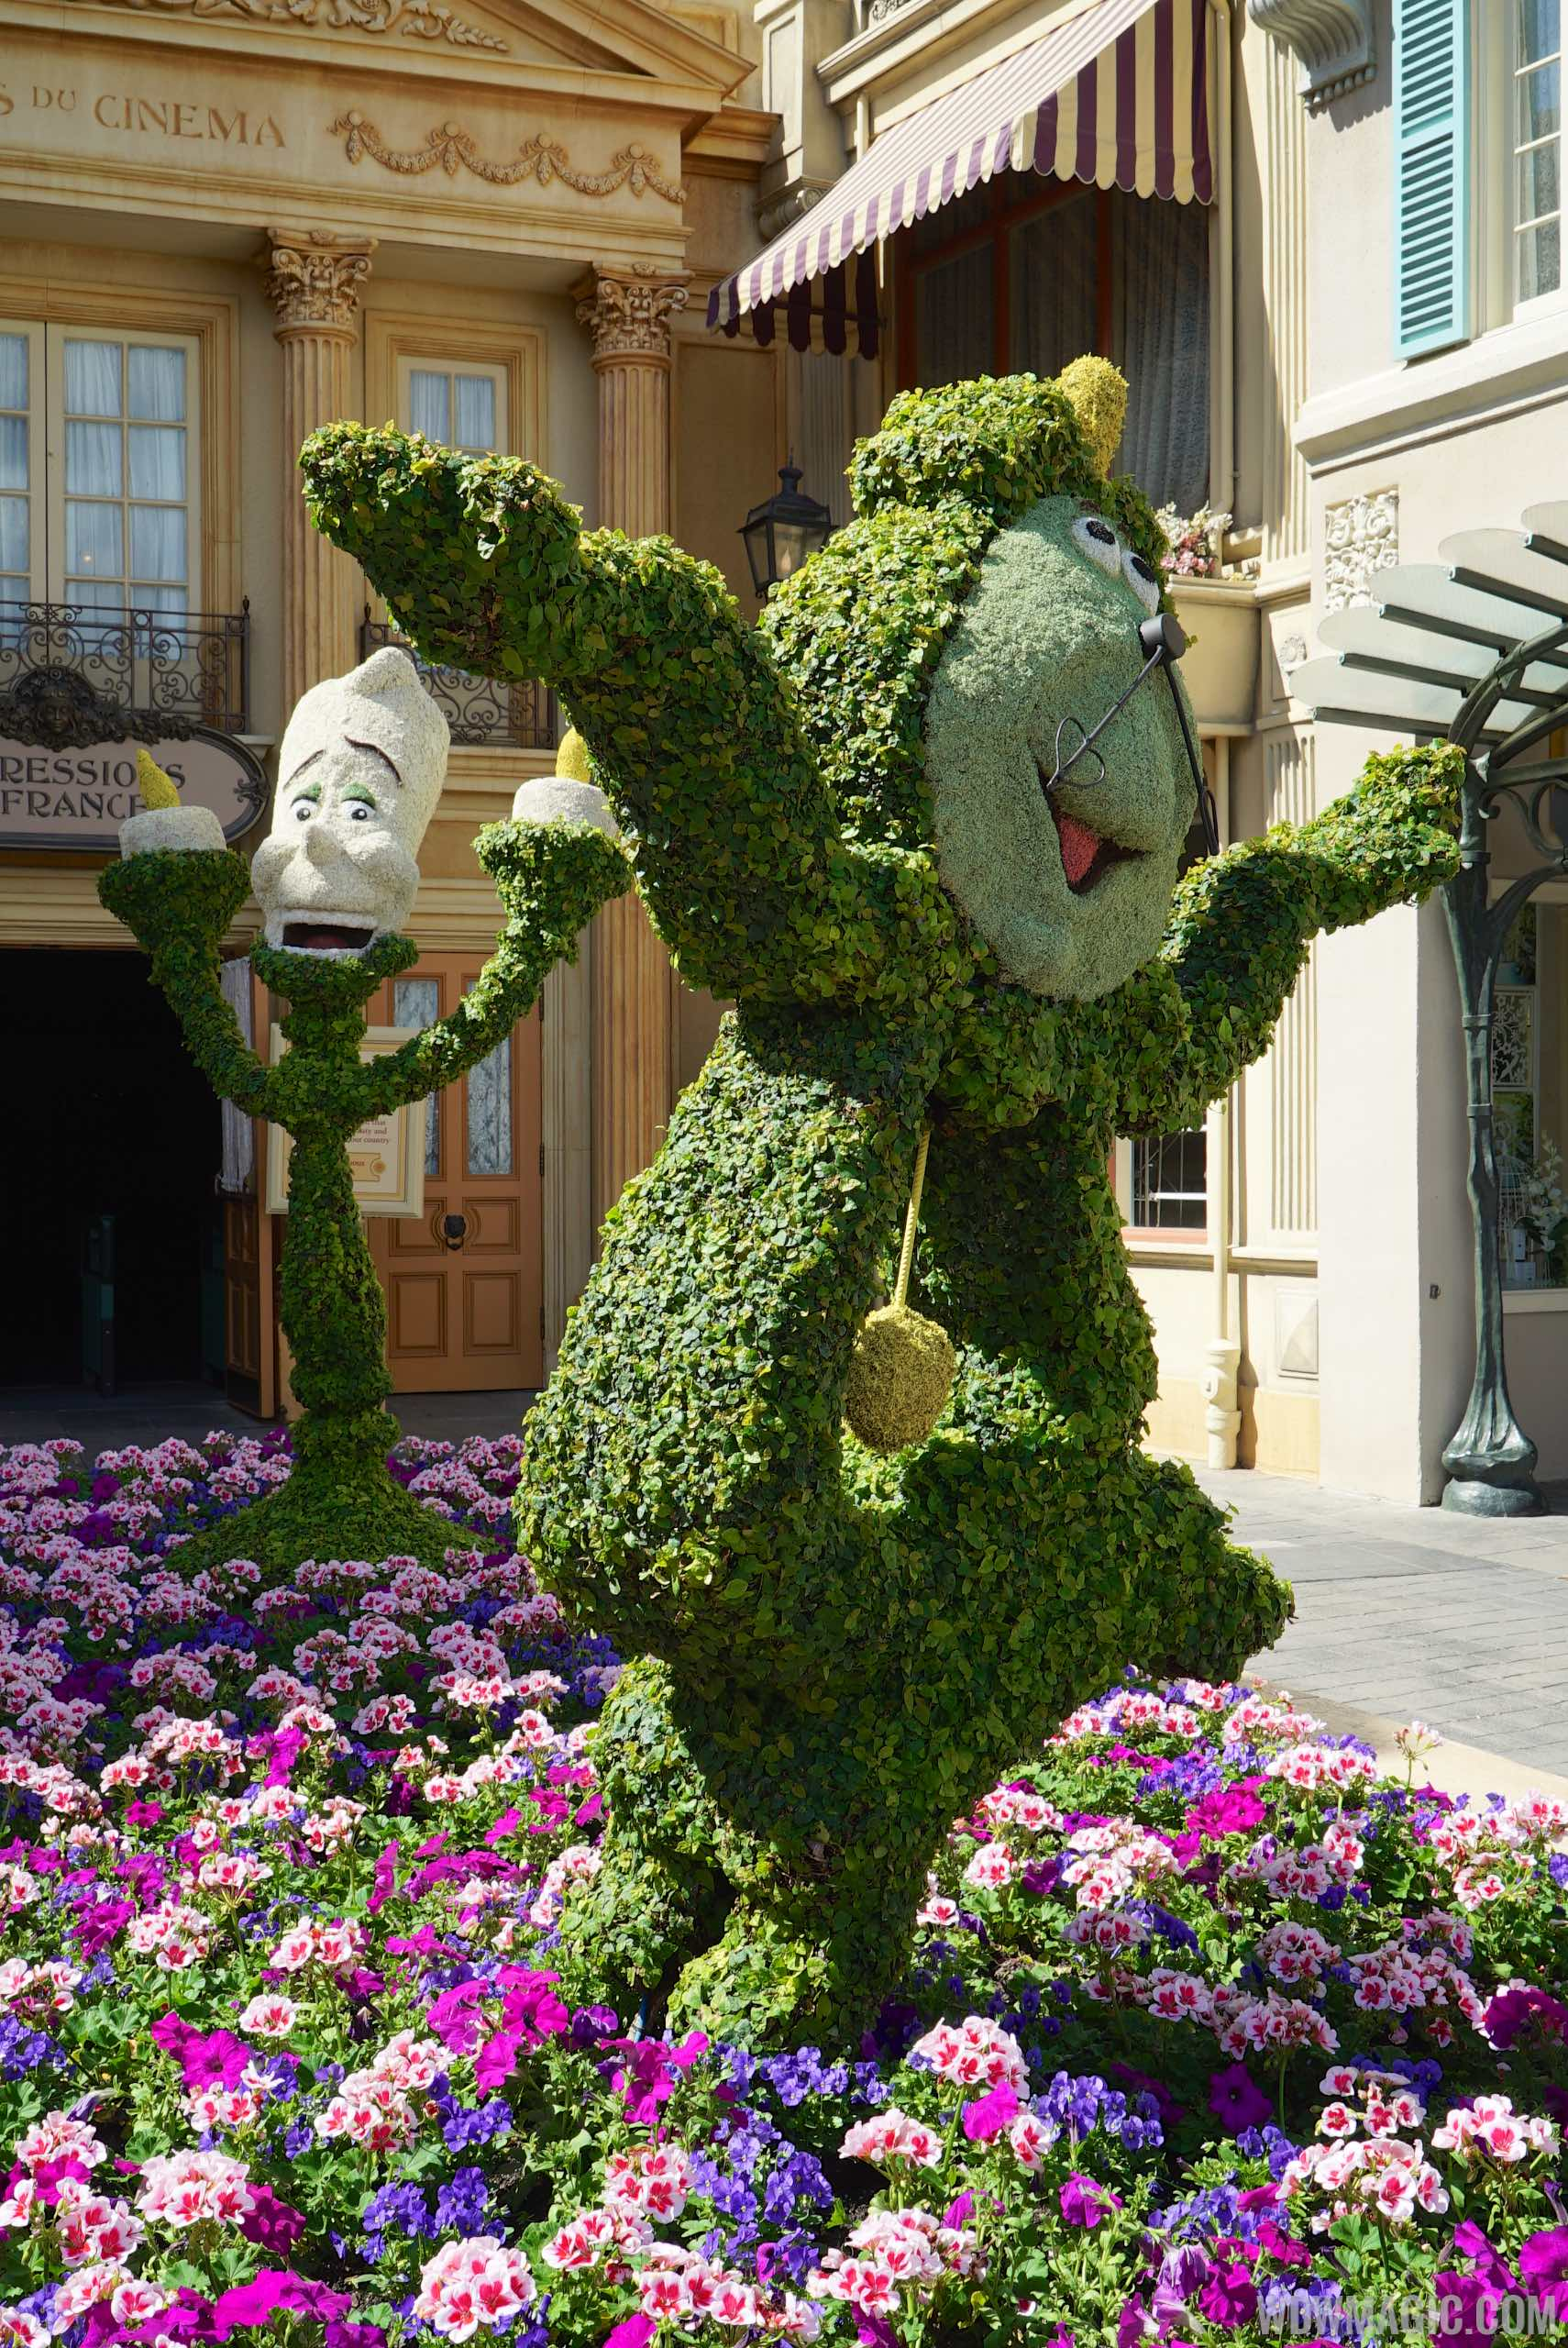 2015 Epcot International Flower And Garden Festival Opening Day Tour Photo 59 Of 74